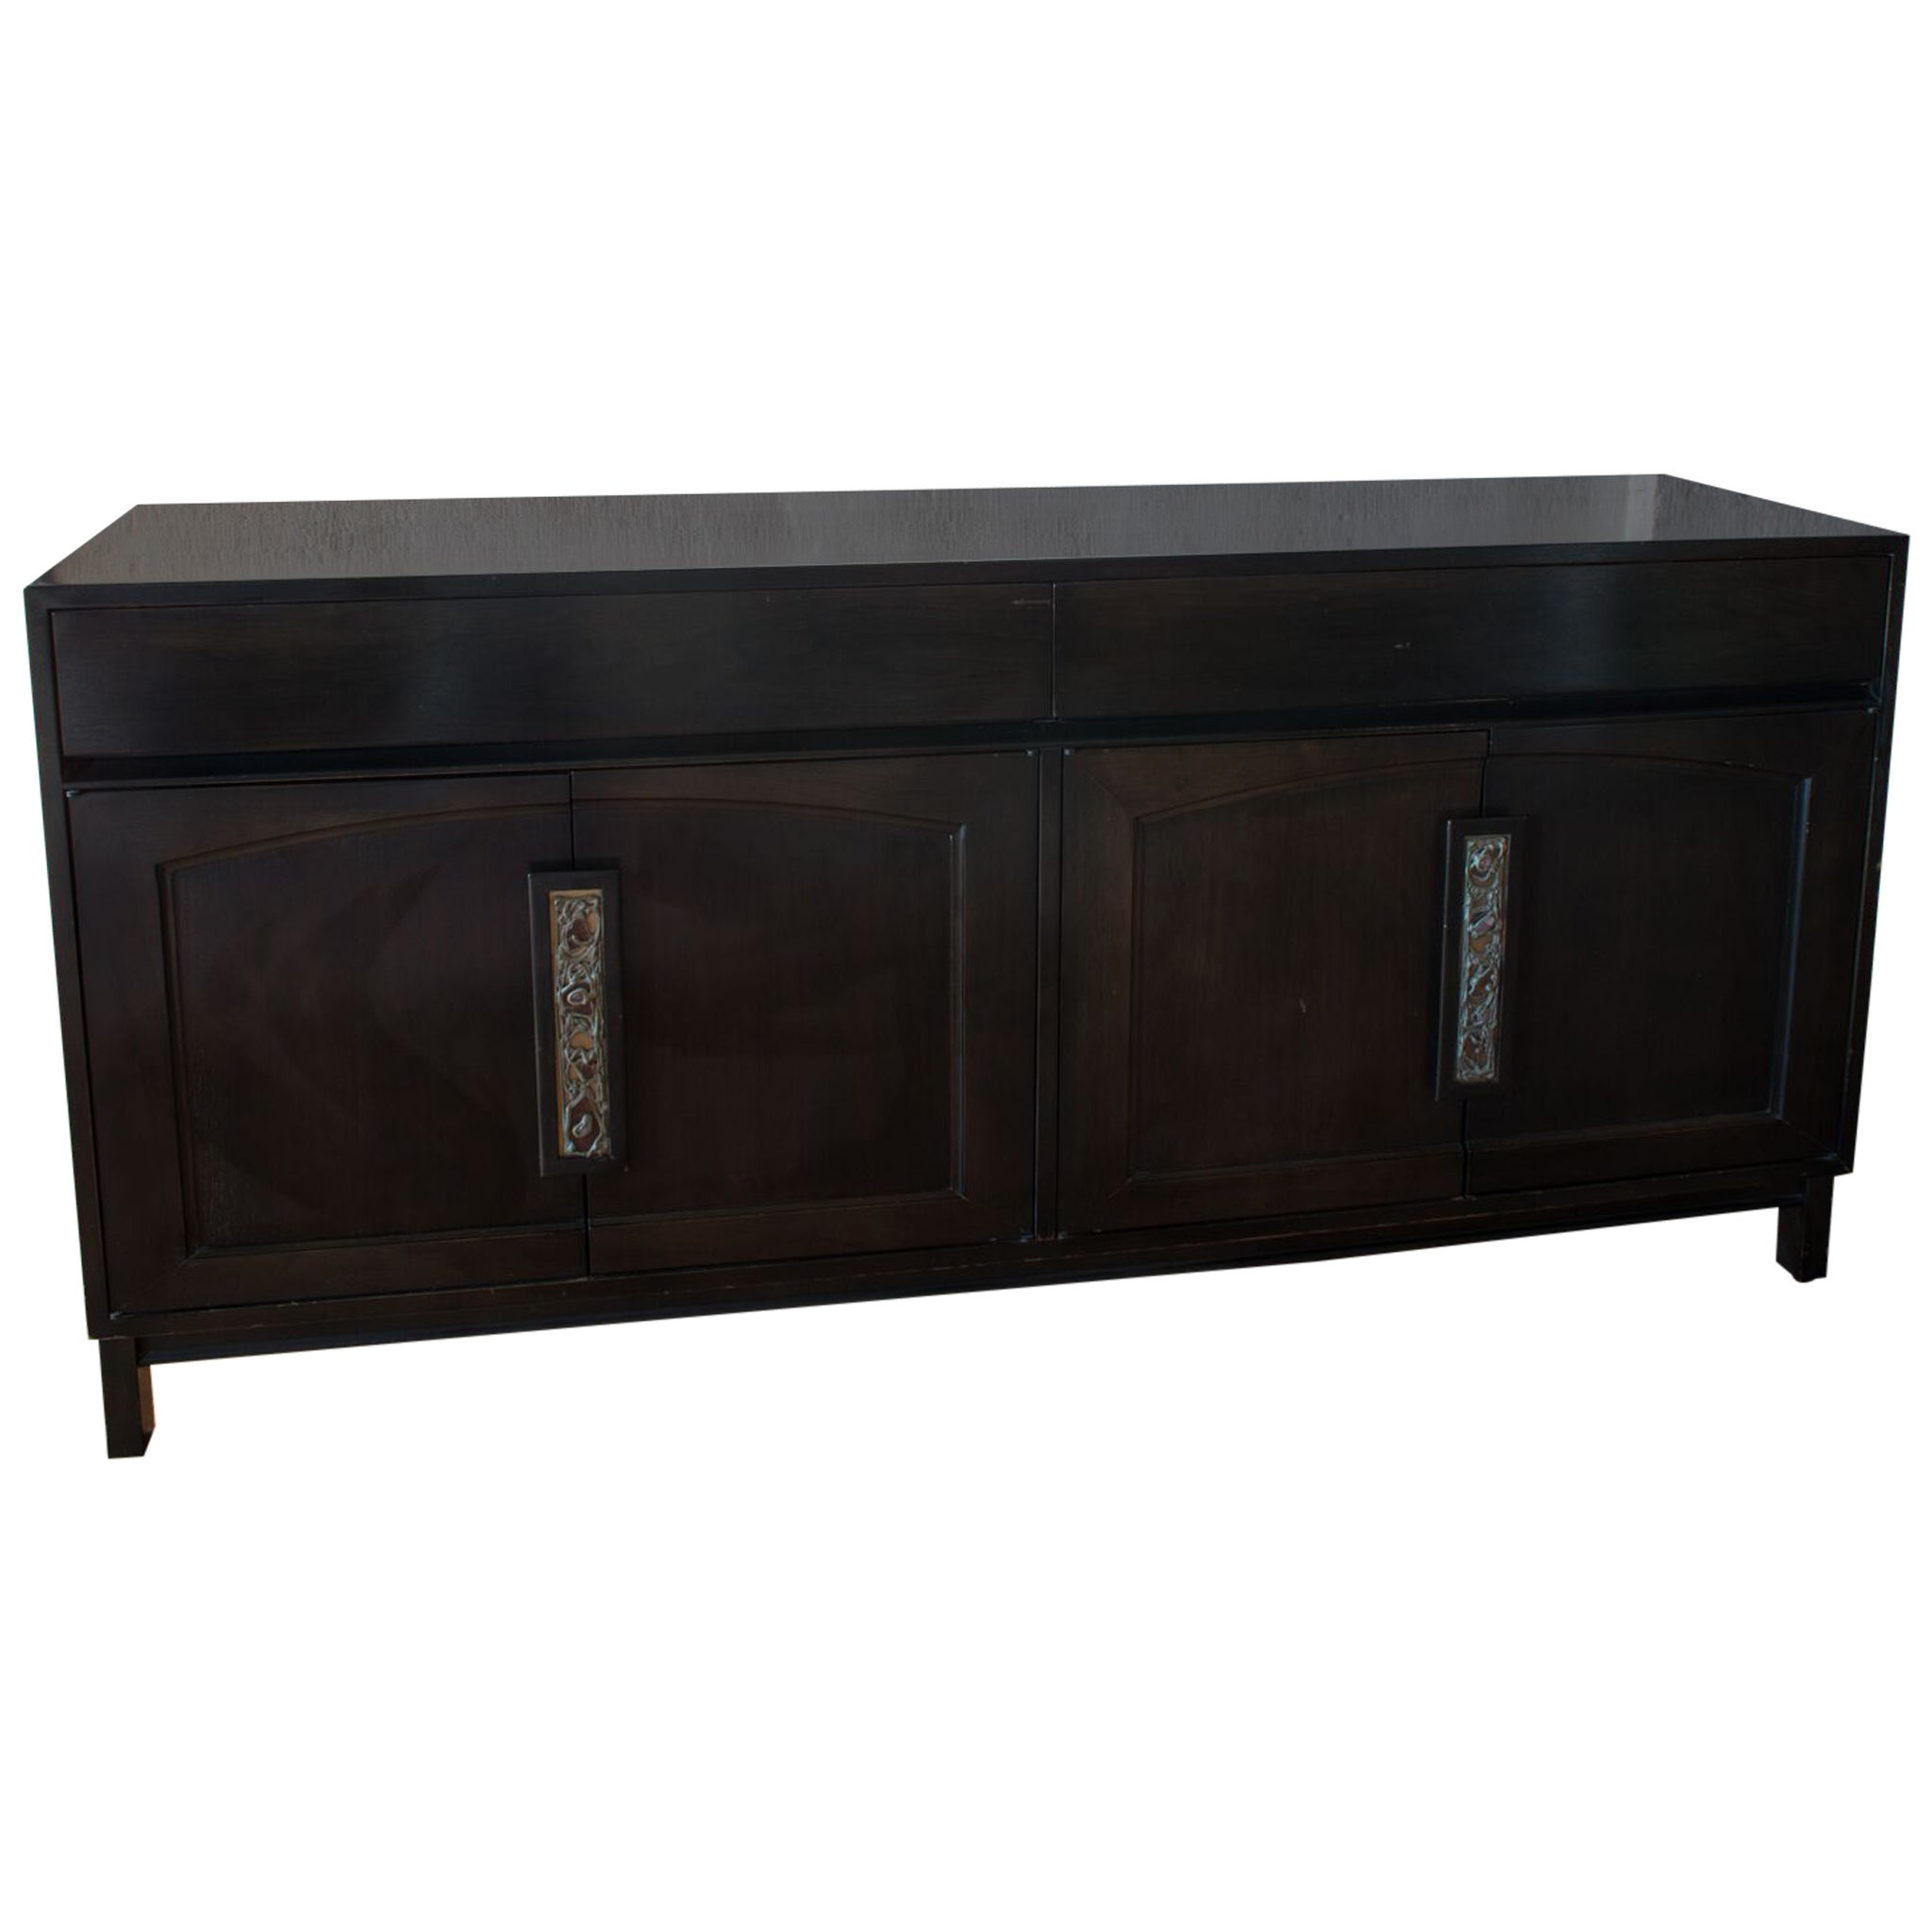 Rose Glen North Dakota ⁓ Try These Credenza Or Buffet Inside Abhinav Credenzas (Gallery 14 of 30)